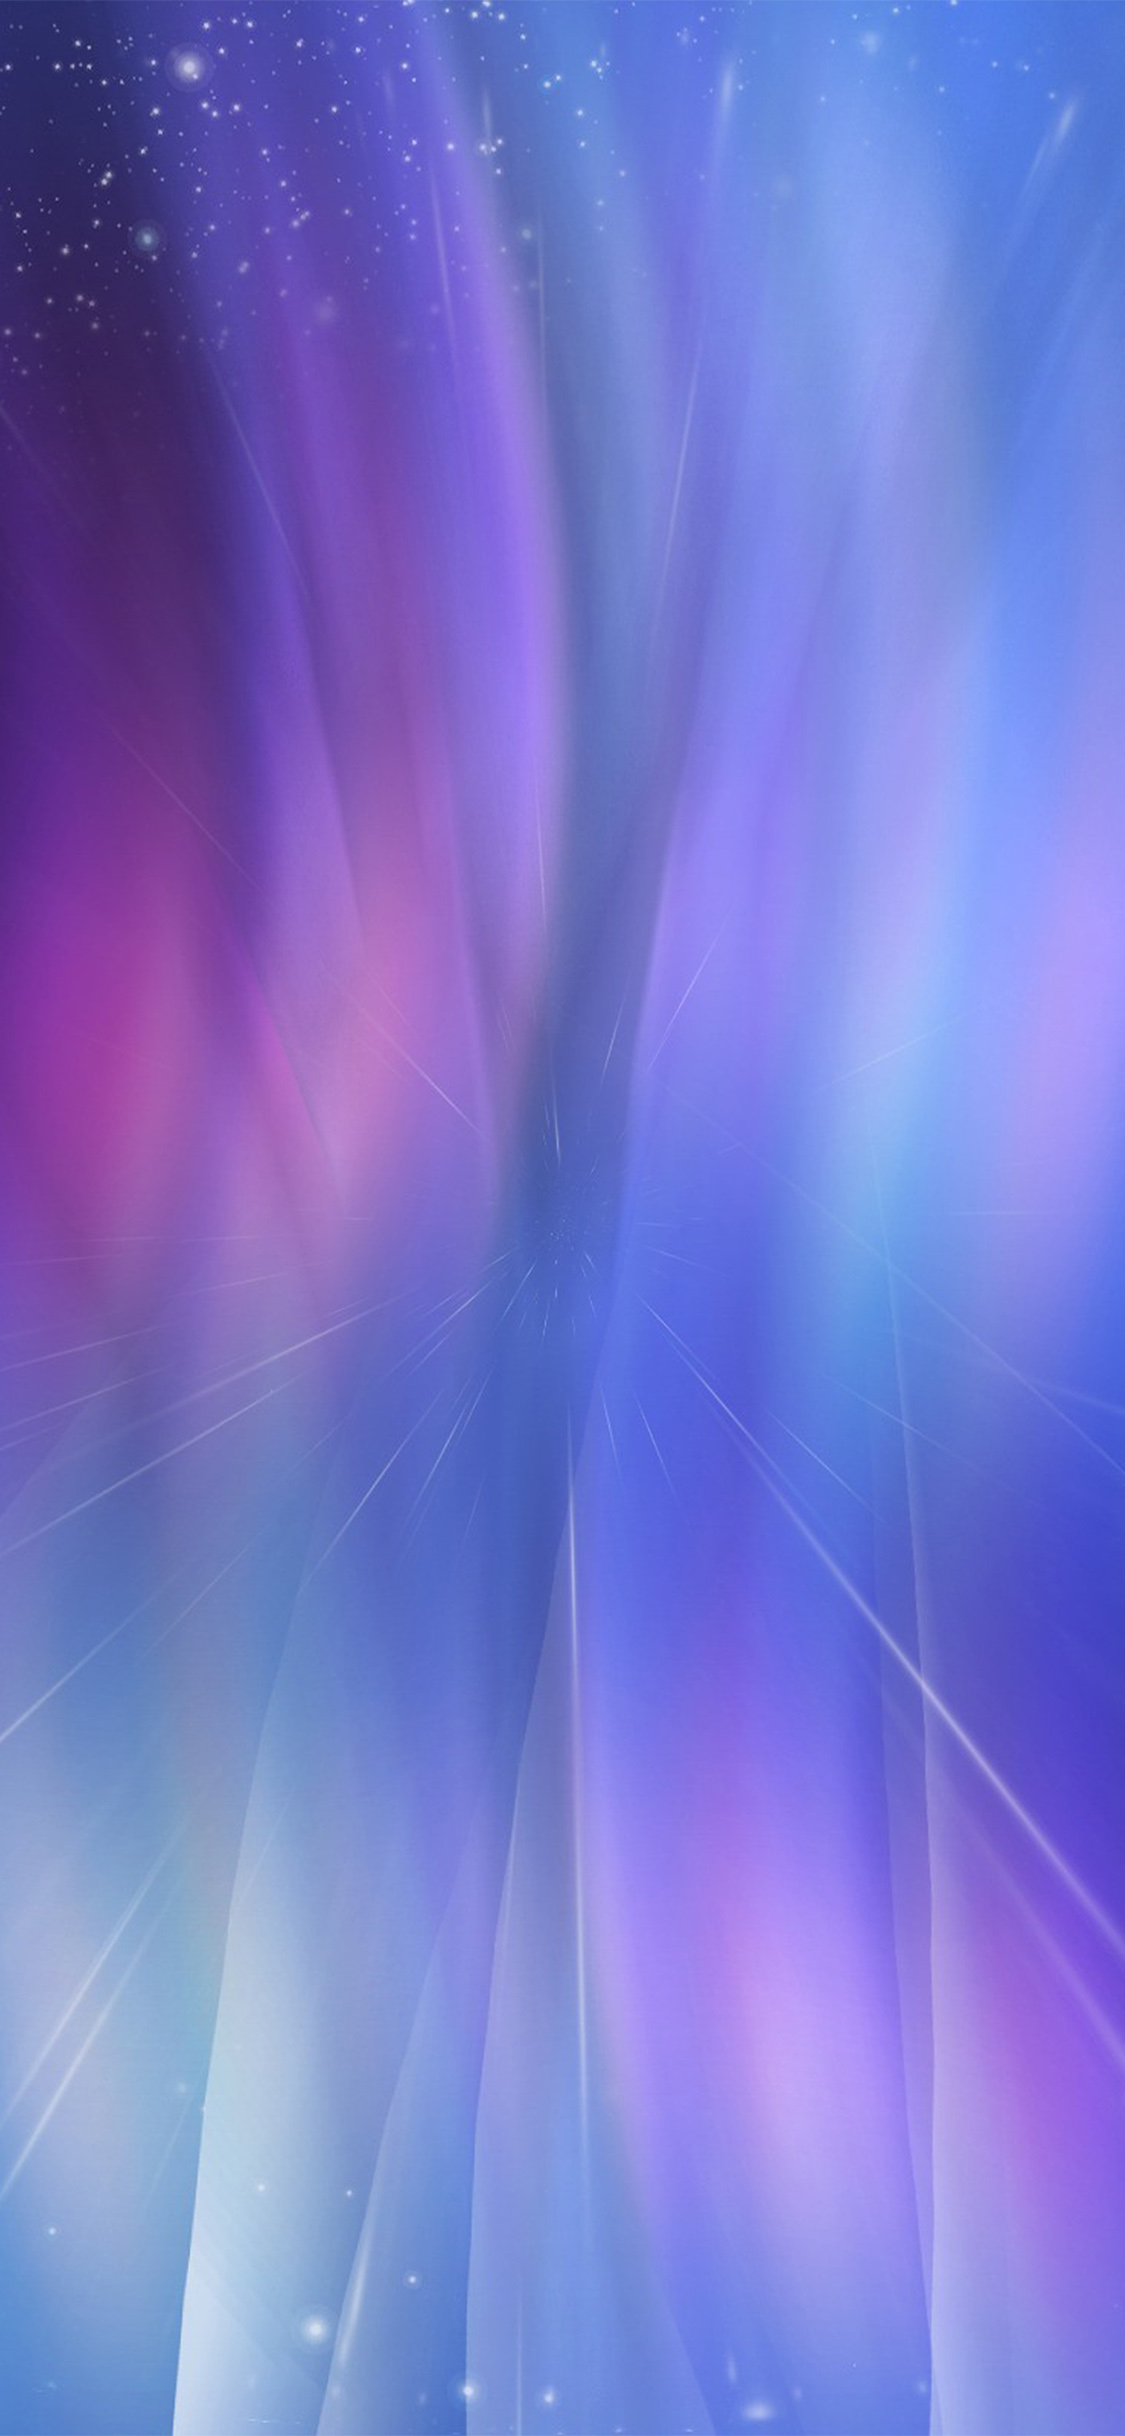 iPhoneXpapers.com-Apple-iPhone-wallpaper-vp16-fantasy-purple-blue-abstract-pattern